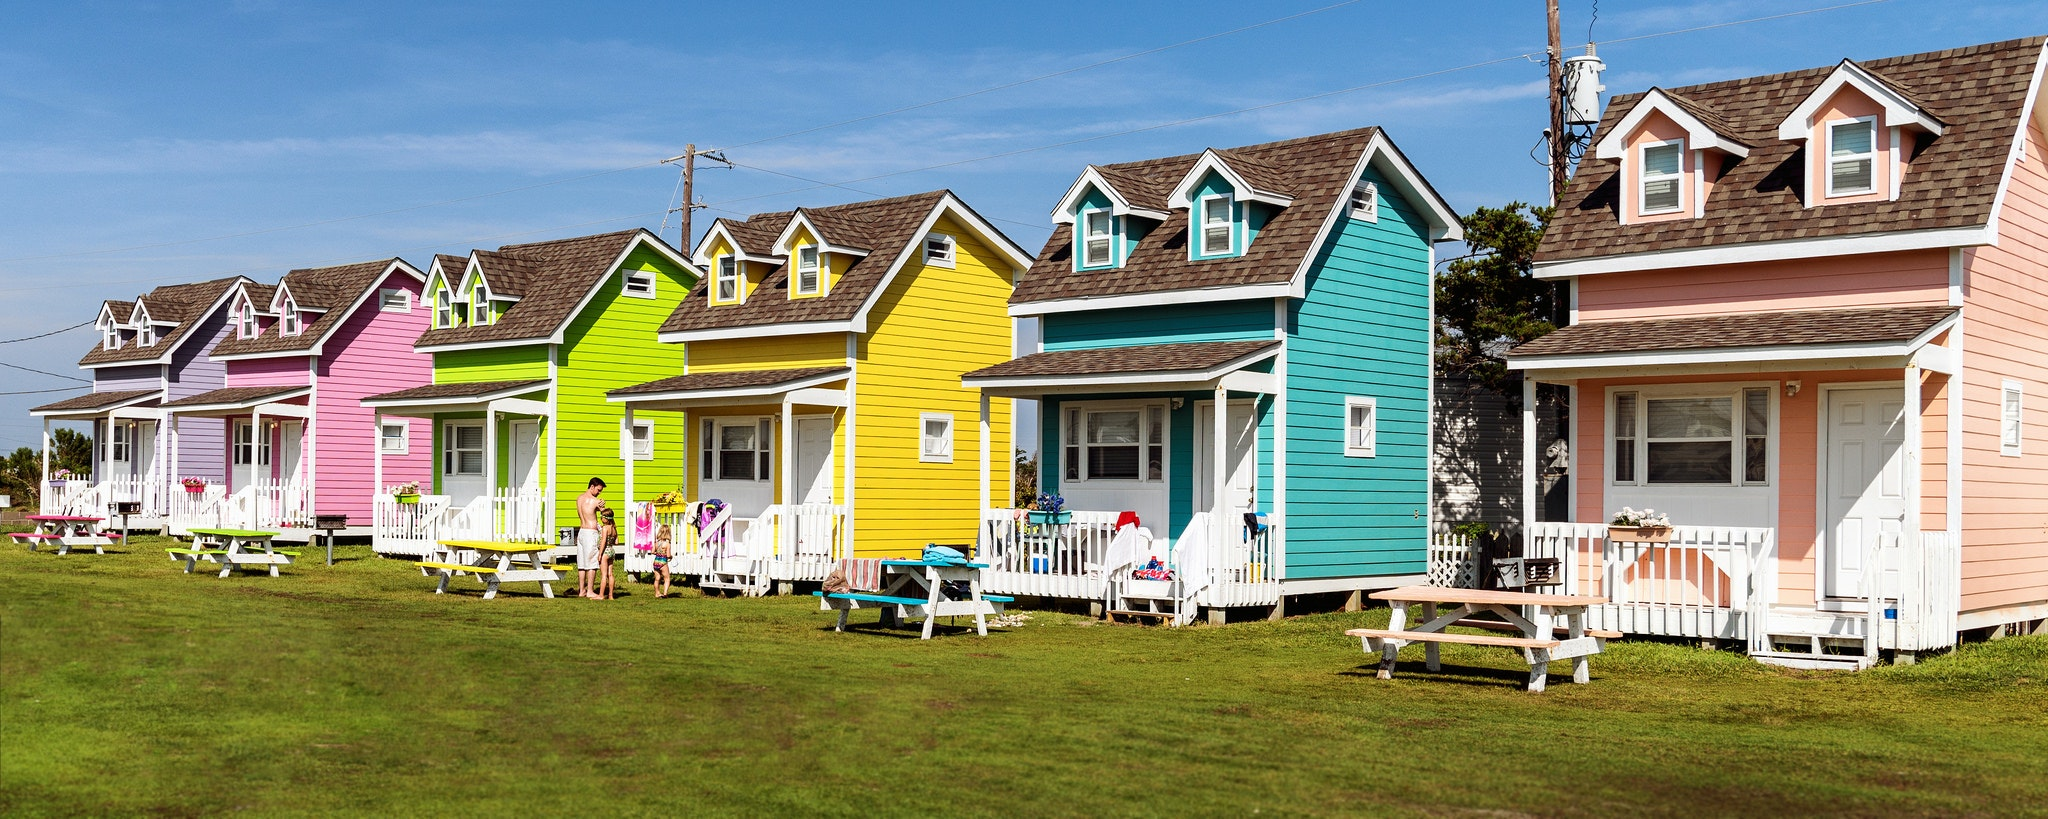 The Tiny House Movement Originated In The US In The Late 1990s. Bill  Dickinson/Flickr